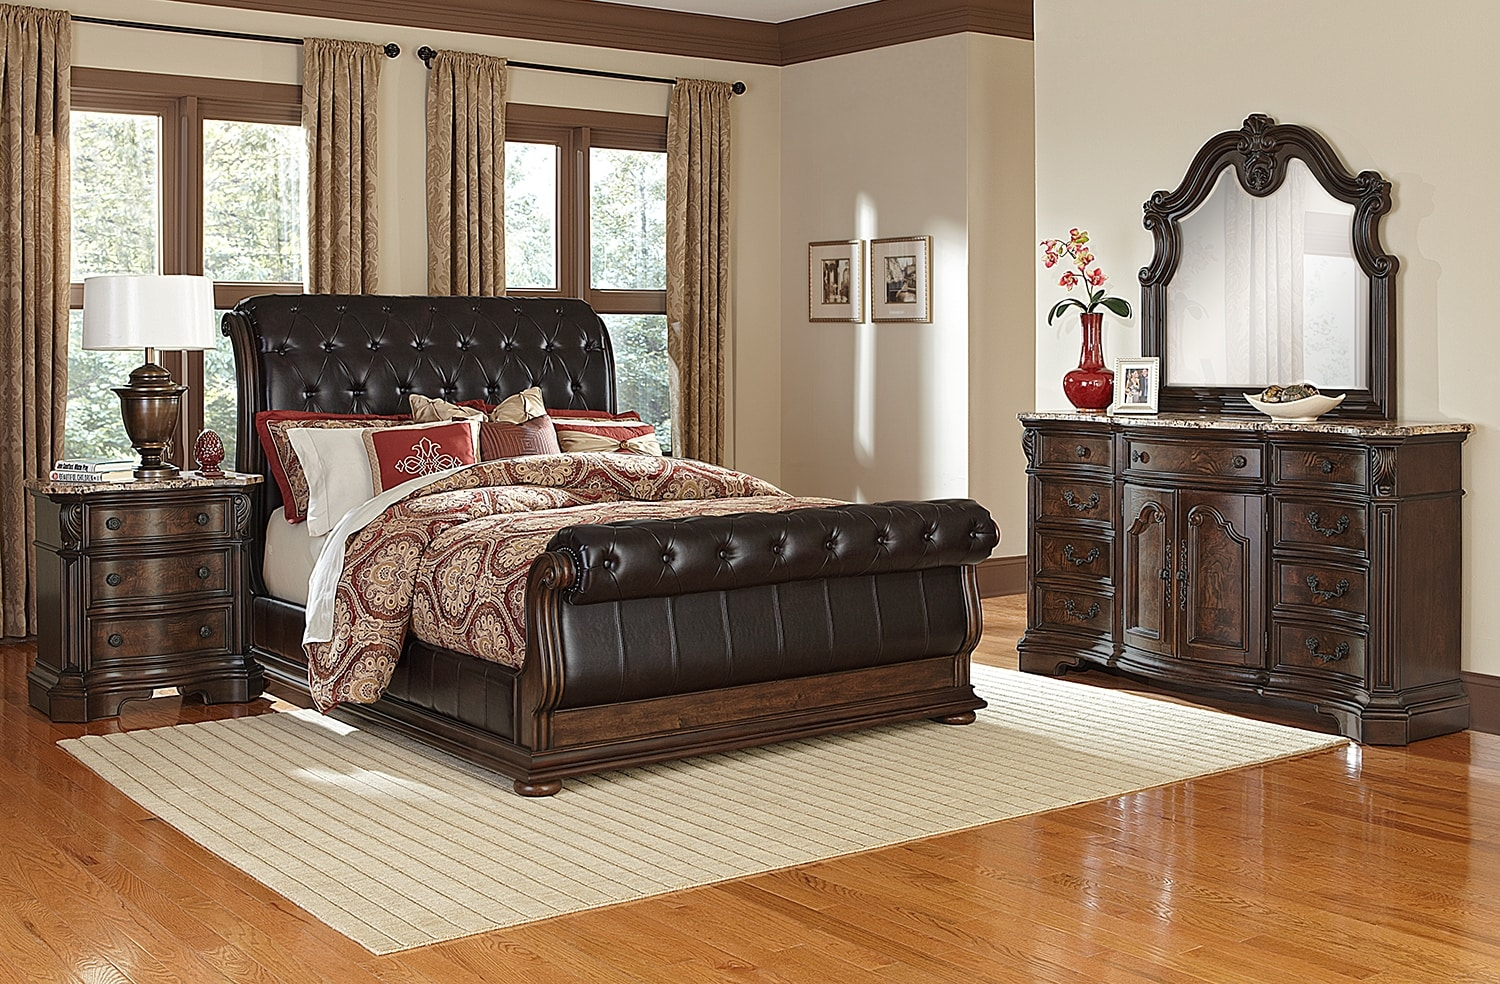 Bedroom Furniture - Monticello Pecan II 6 Pc. Queen Bedroom